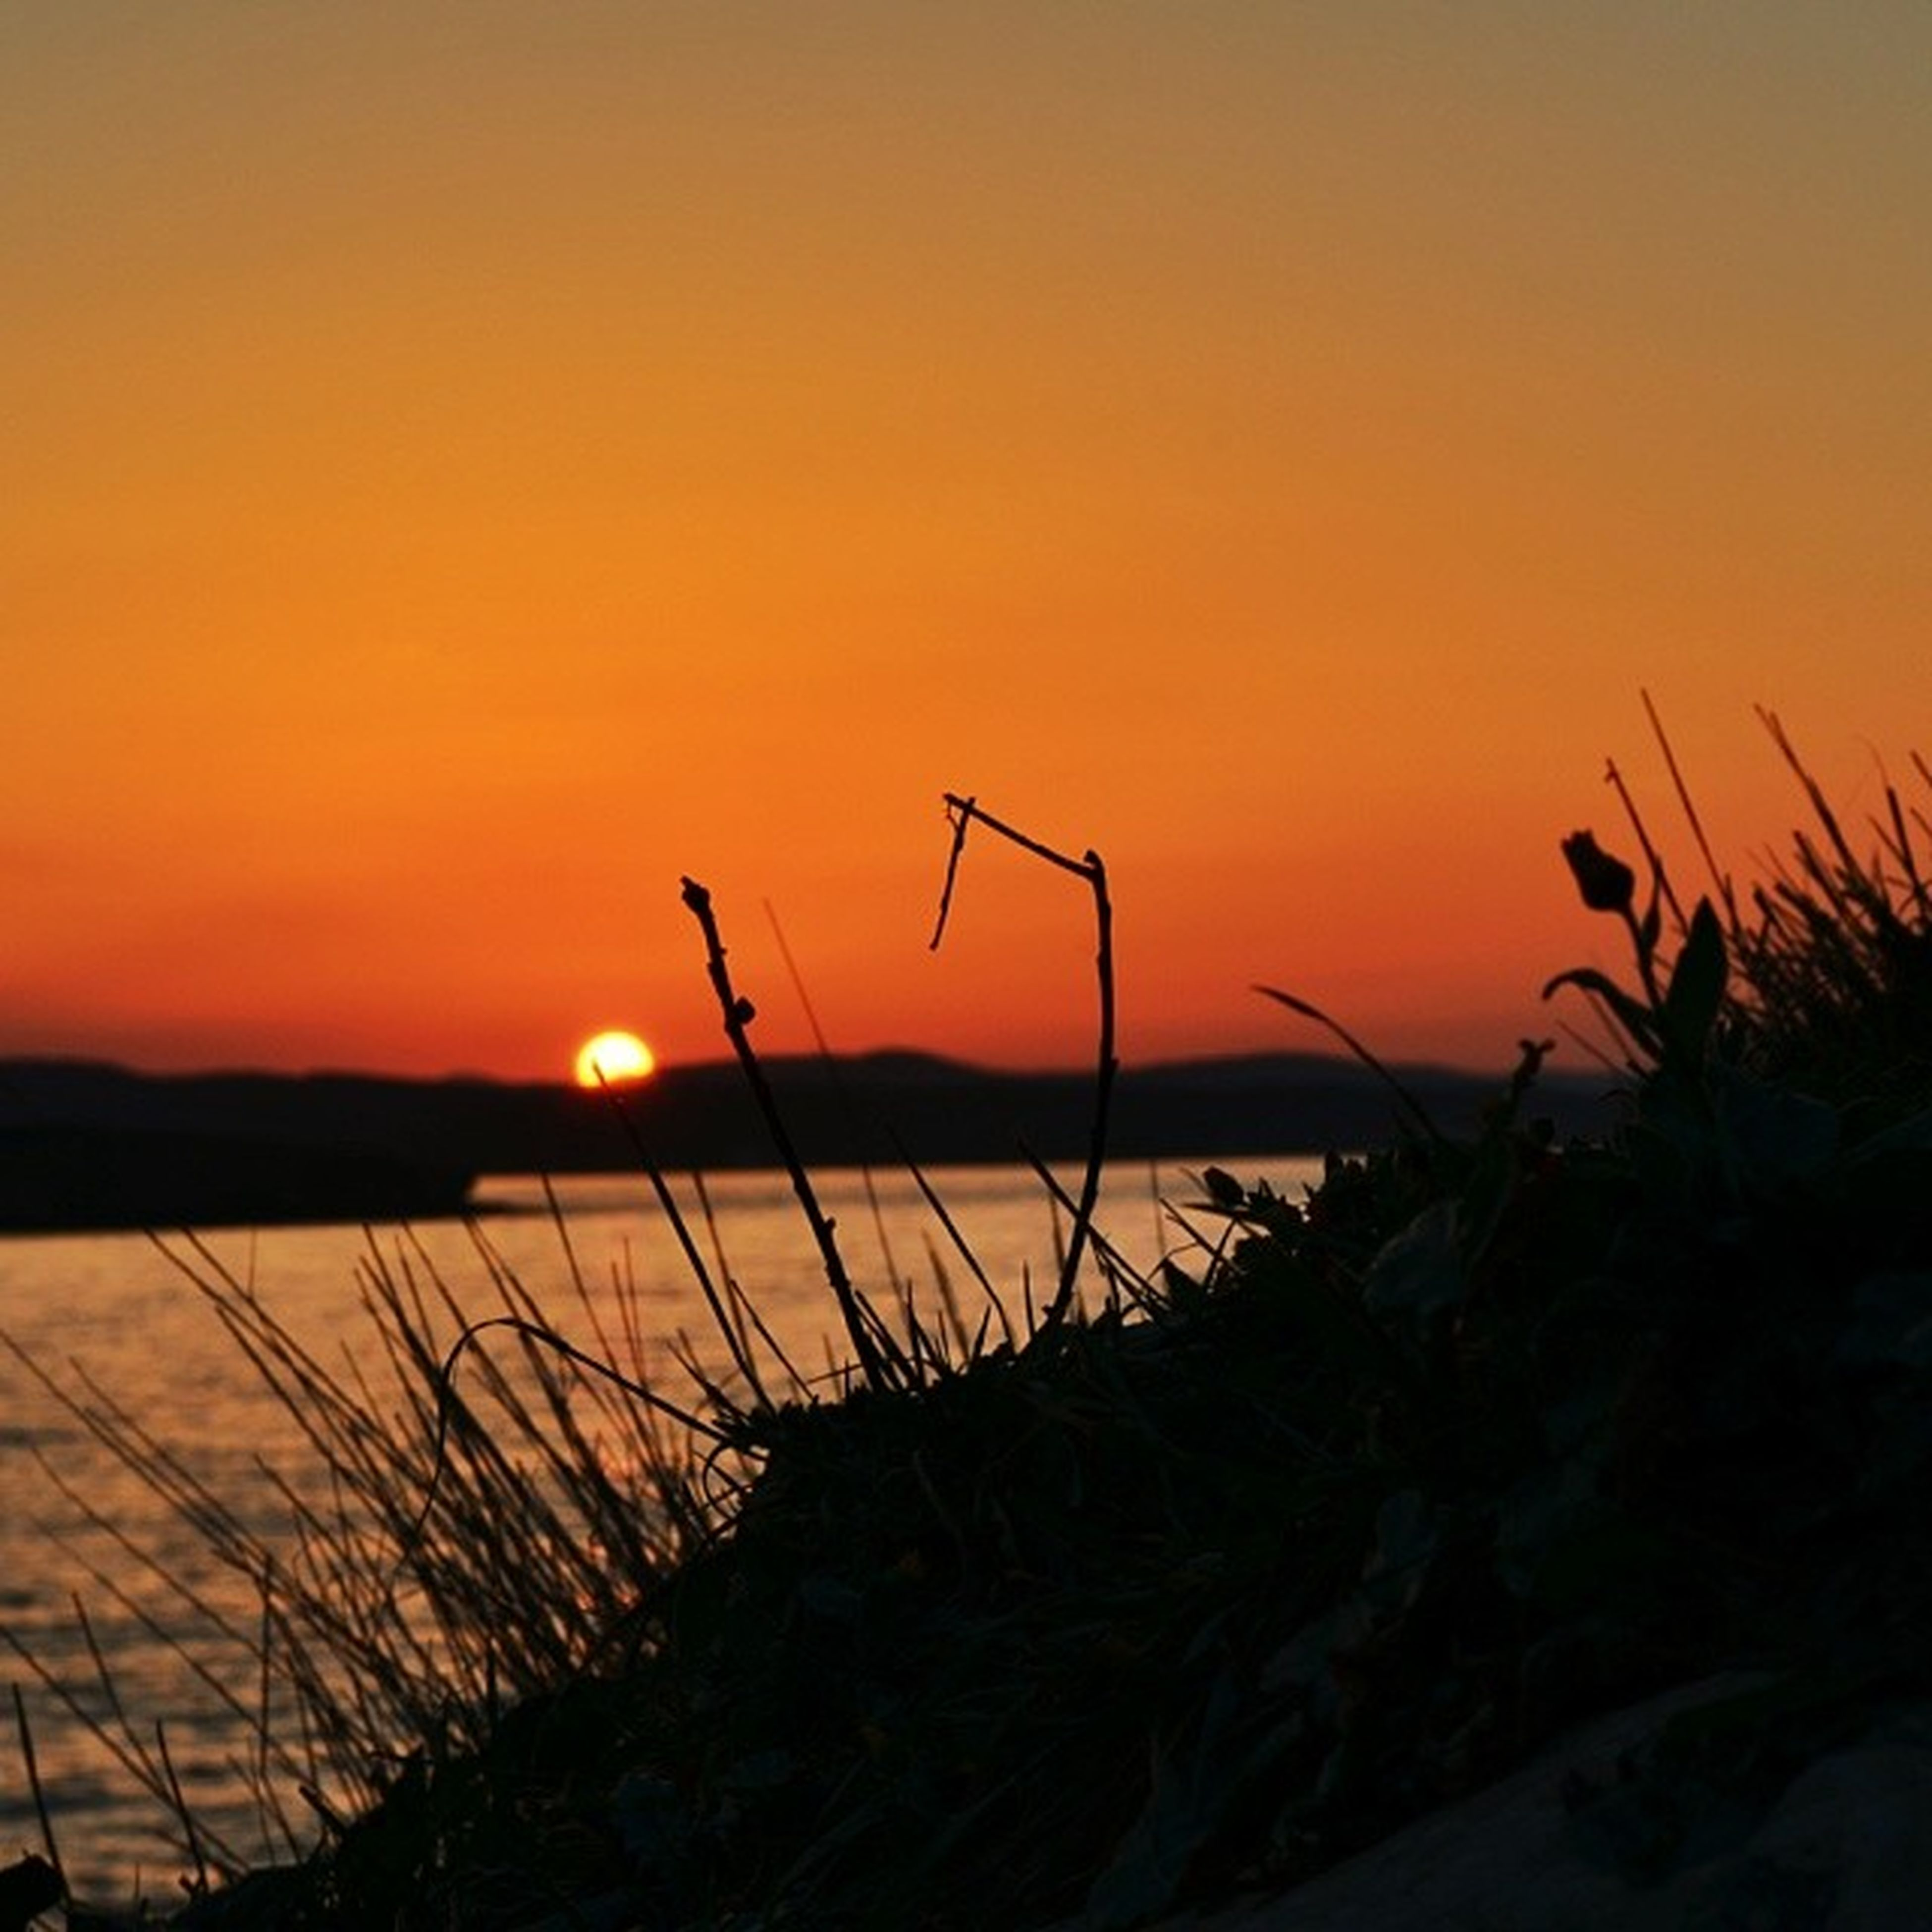 sunset, water, orange color, sun, silhouette, tranquility, tranquil scene, scenics, beauty in nature, sea, nature, clear sky, idyllic, plant, reflection, copy space, horizon over water, beach, sky, lake